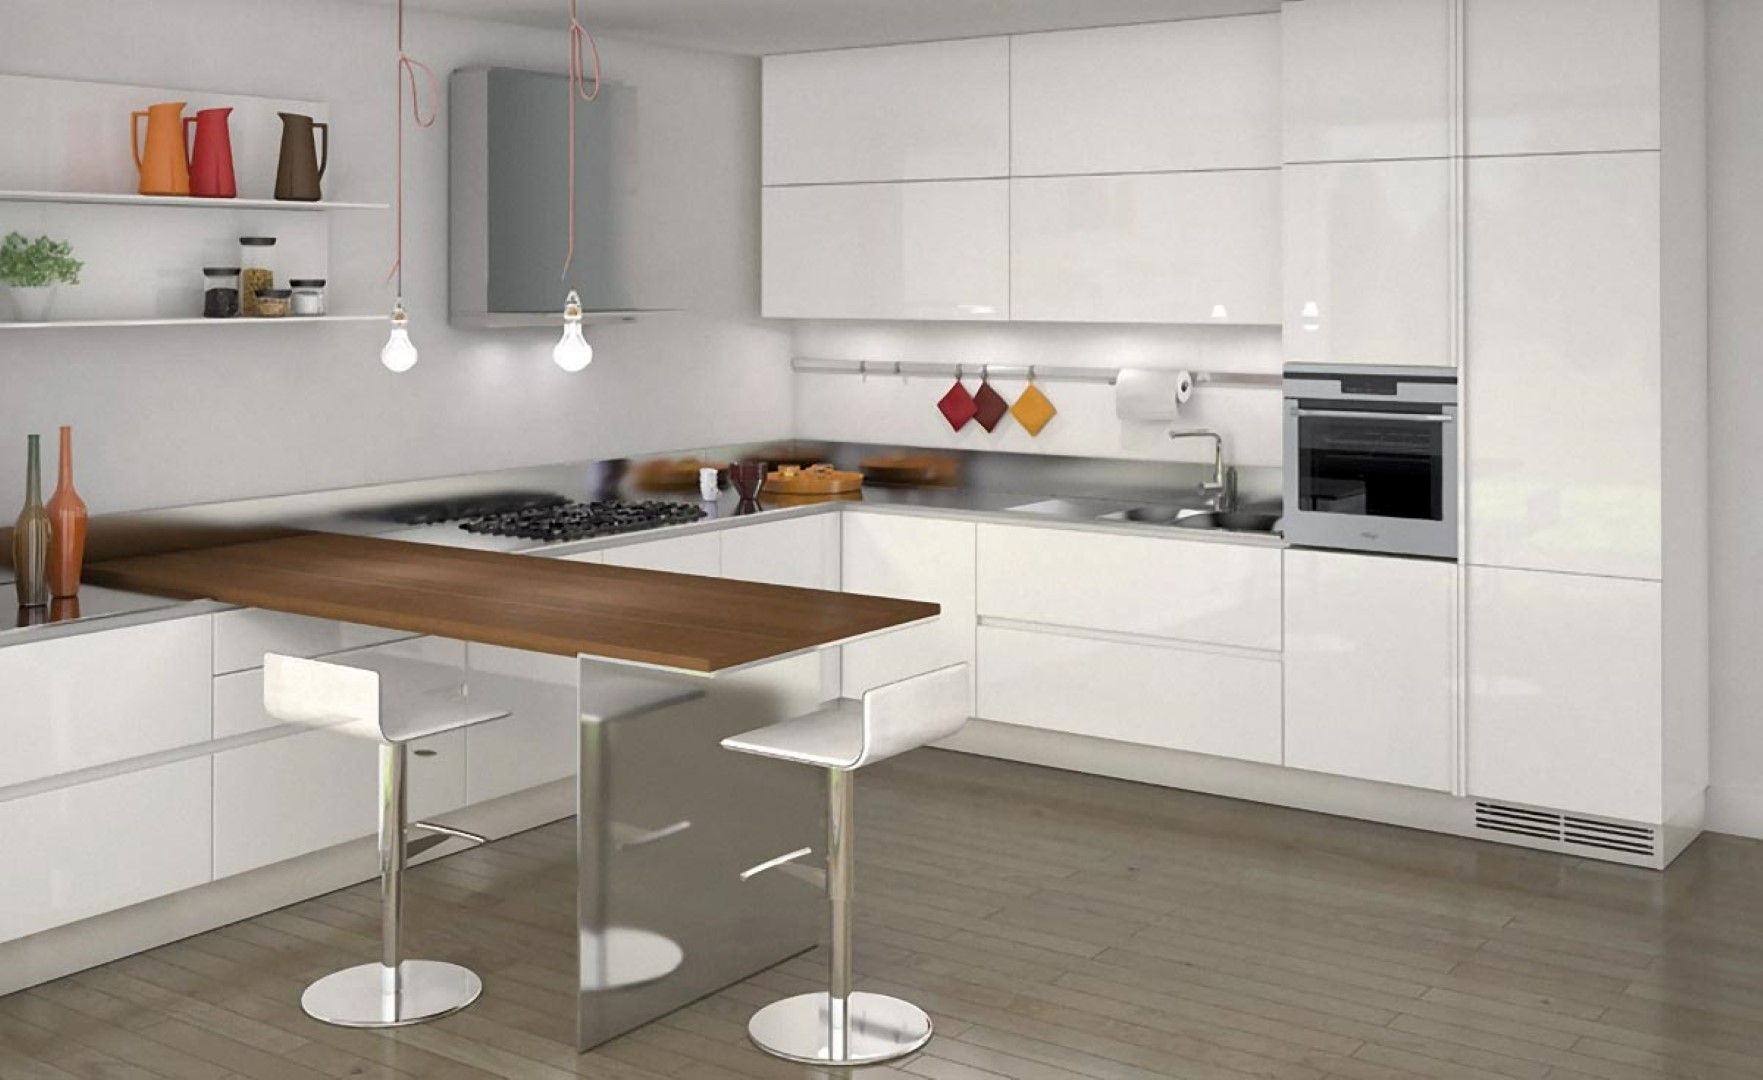 Does your kitchen look outdated consider giving your kitchen a